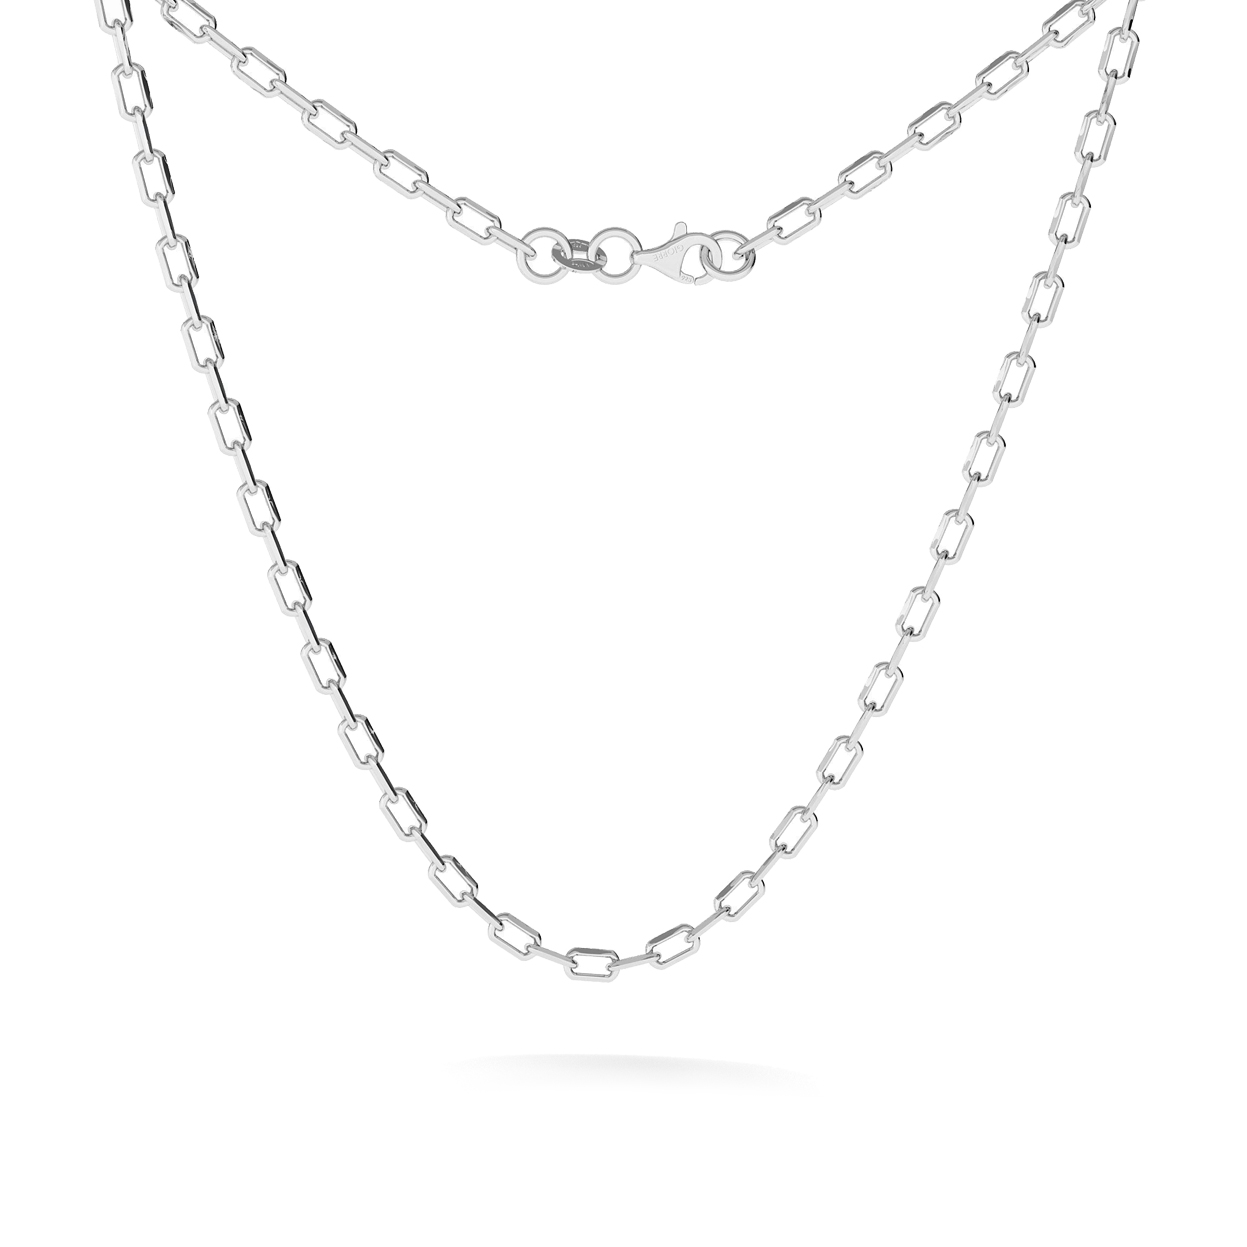 SILVER CHAIN NECKLACE STERLING SILVER 925